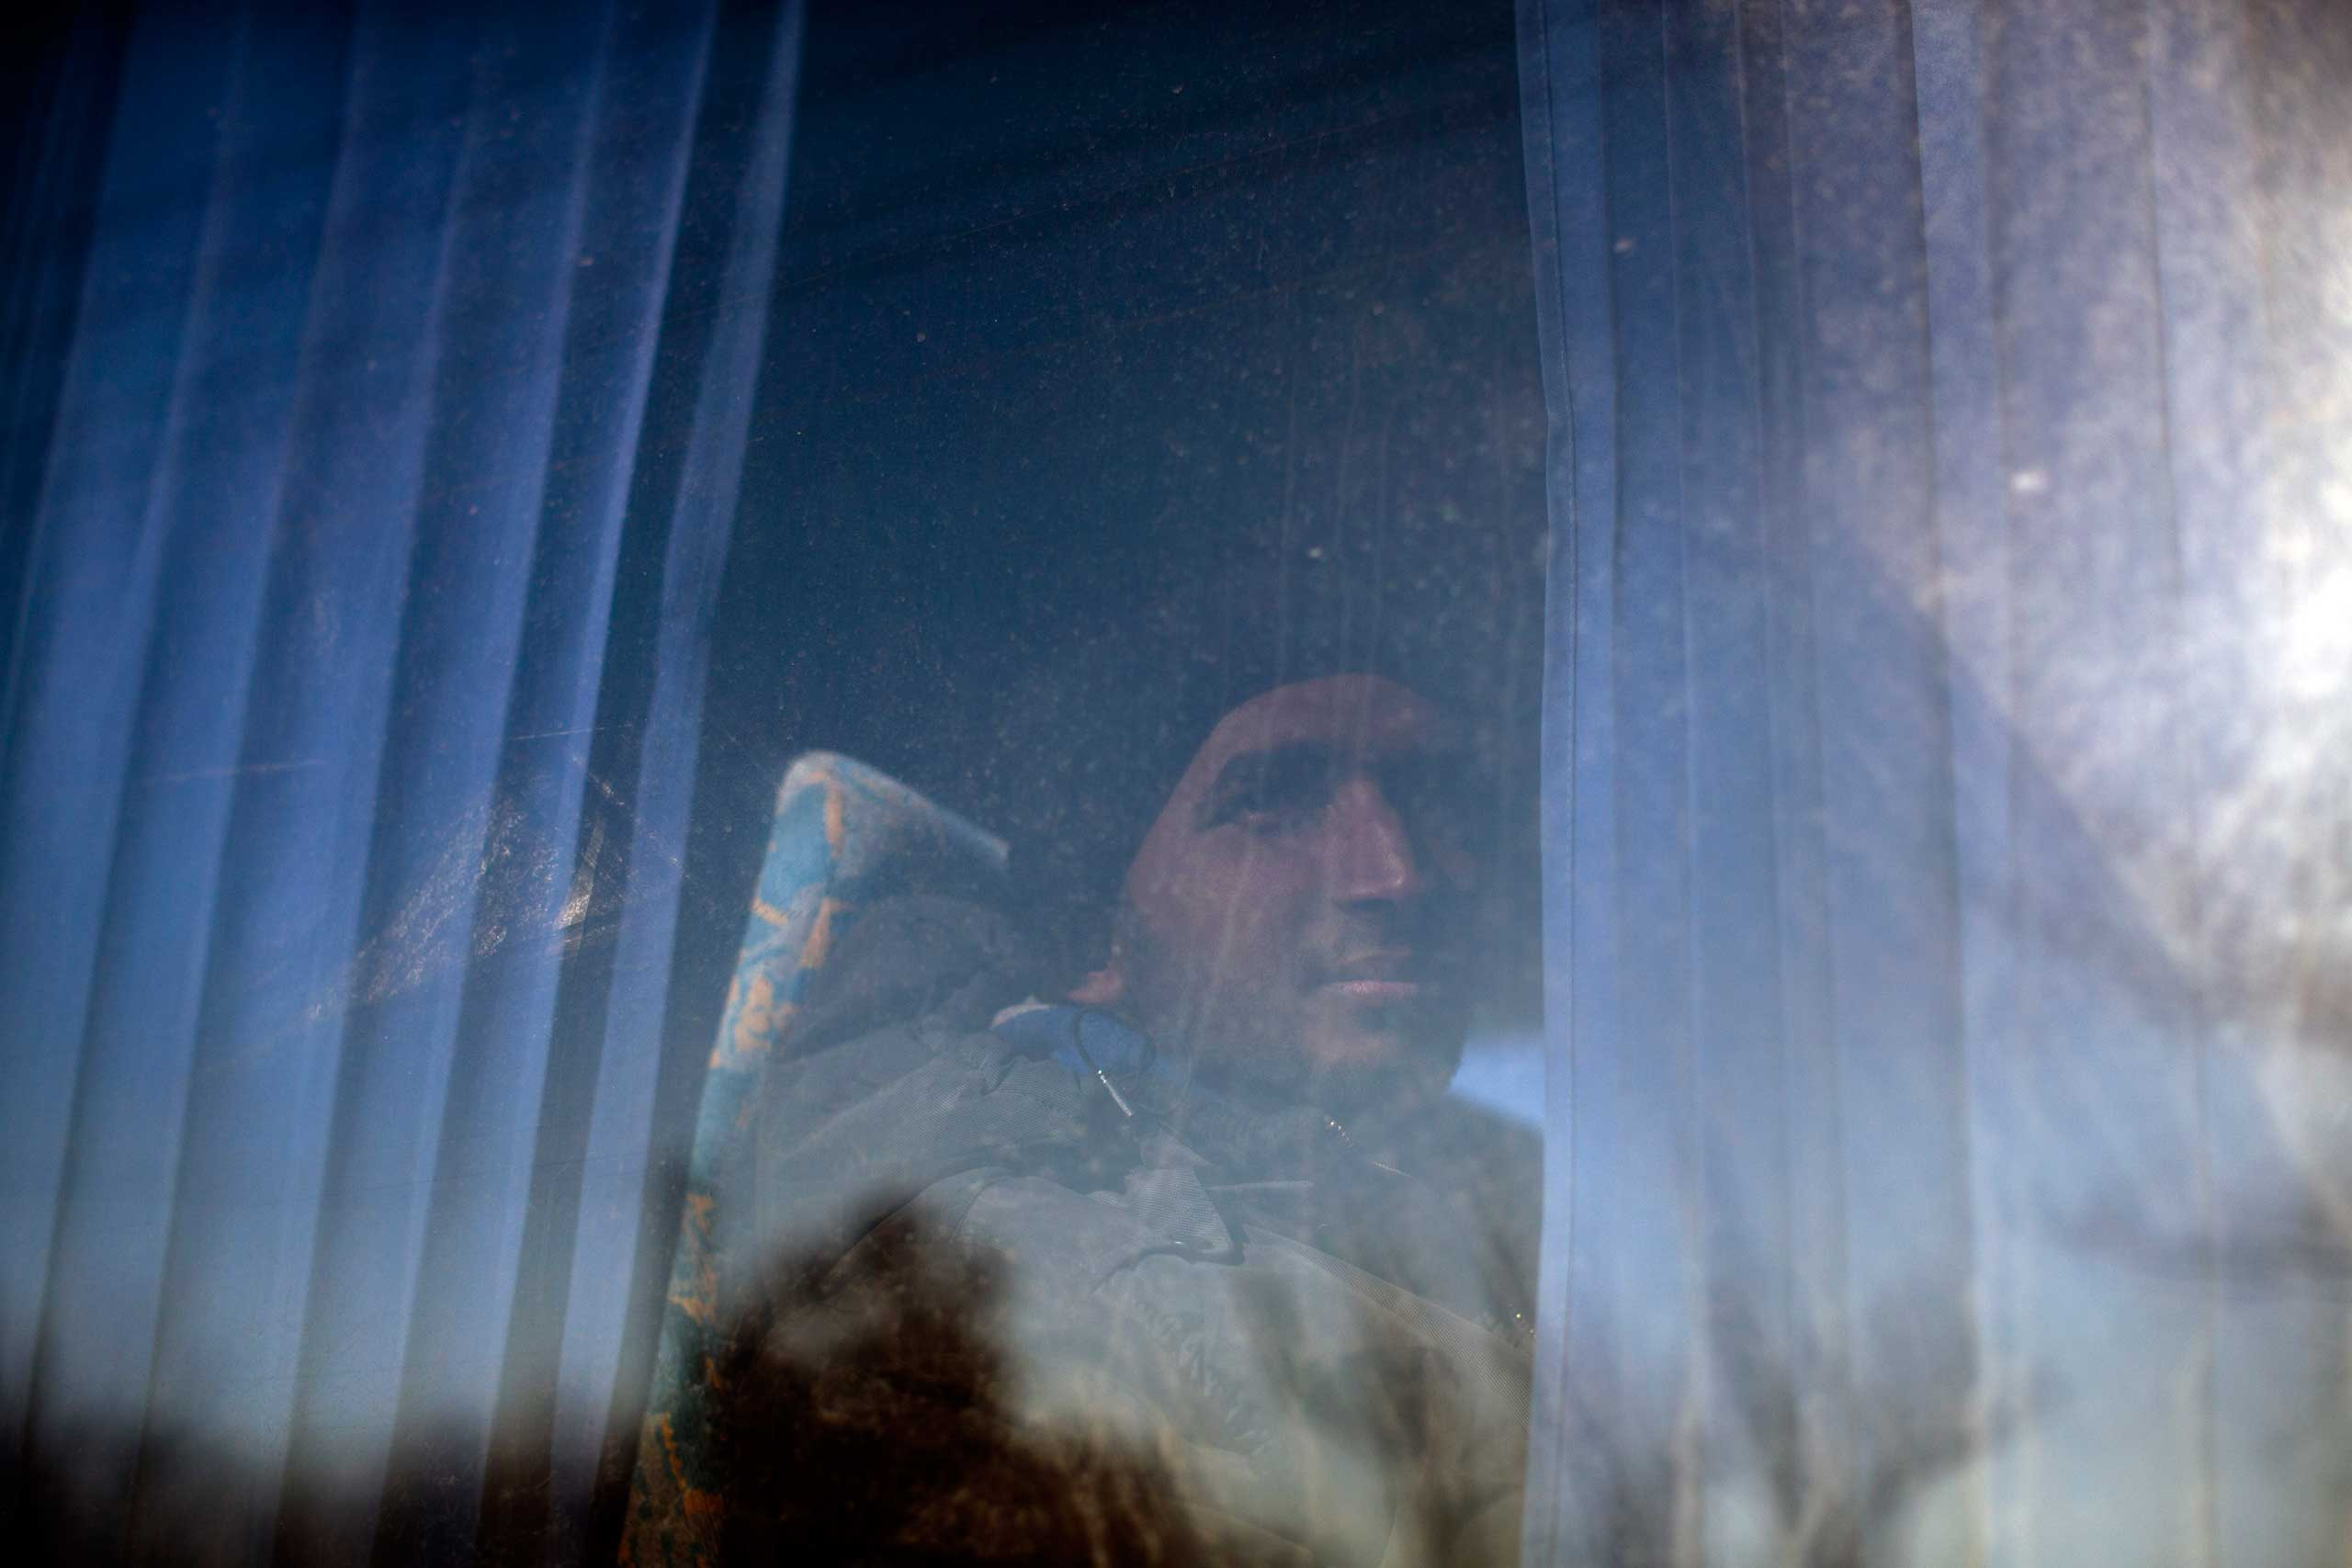 A migrant detained by the Hungarian police after illegally crossing the border with Serbia peers out of a window of a police bus in Asotthalom, some 110 miles southeast of Budapest, Hungary, on Feb. 18, 2015.